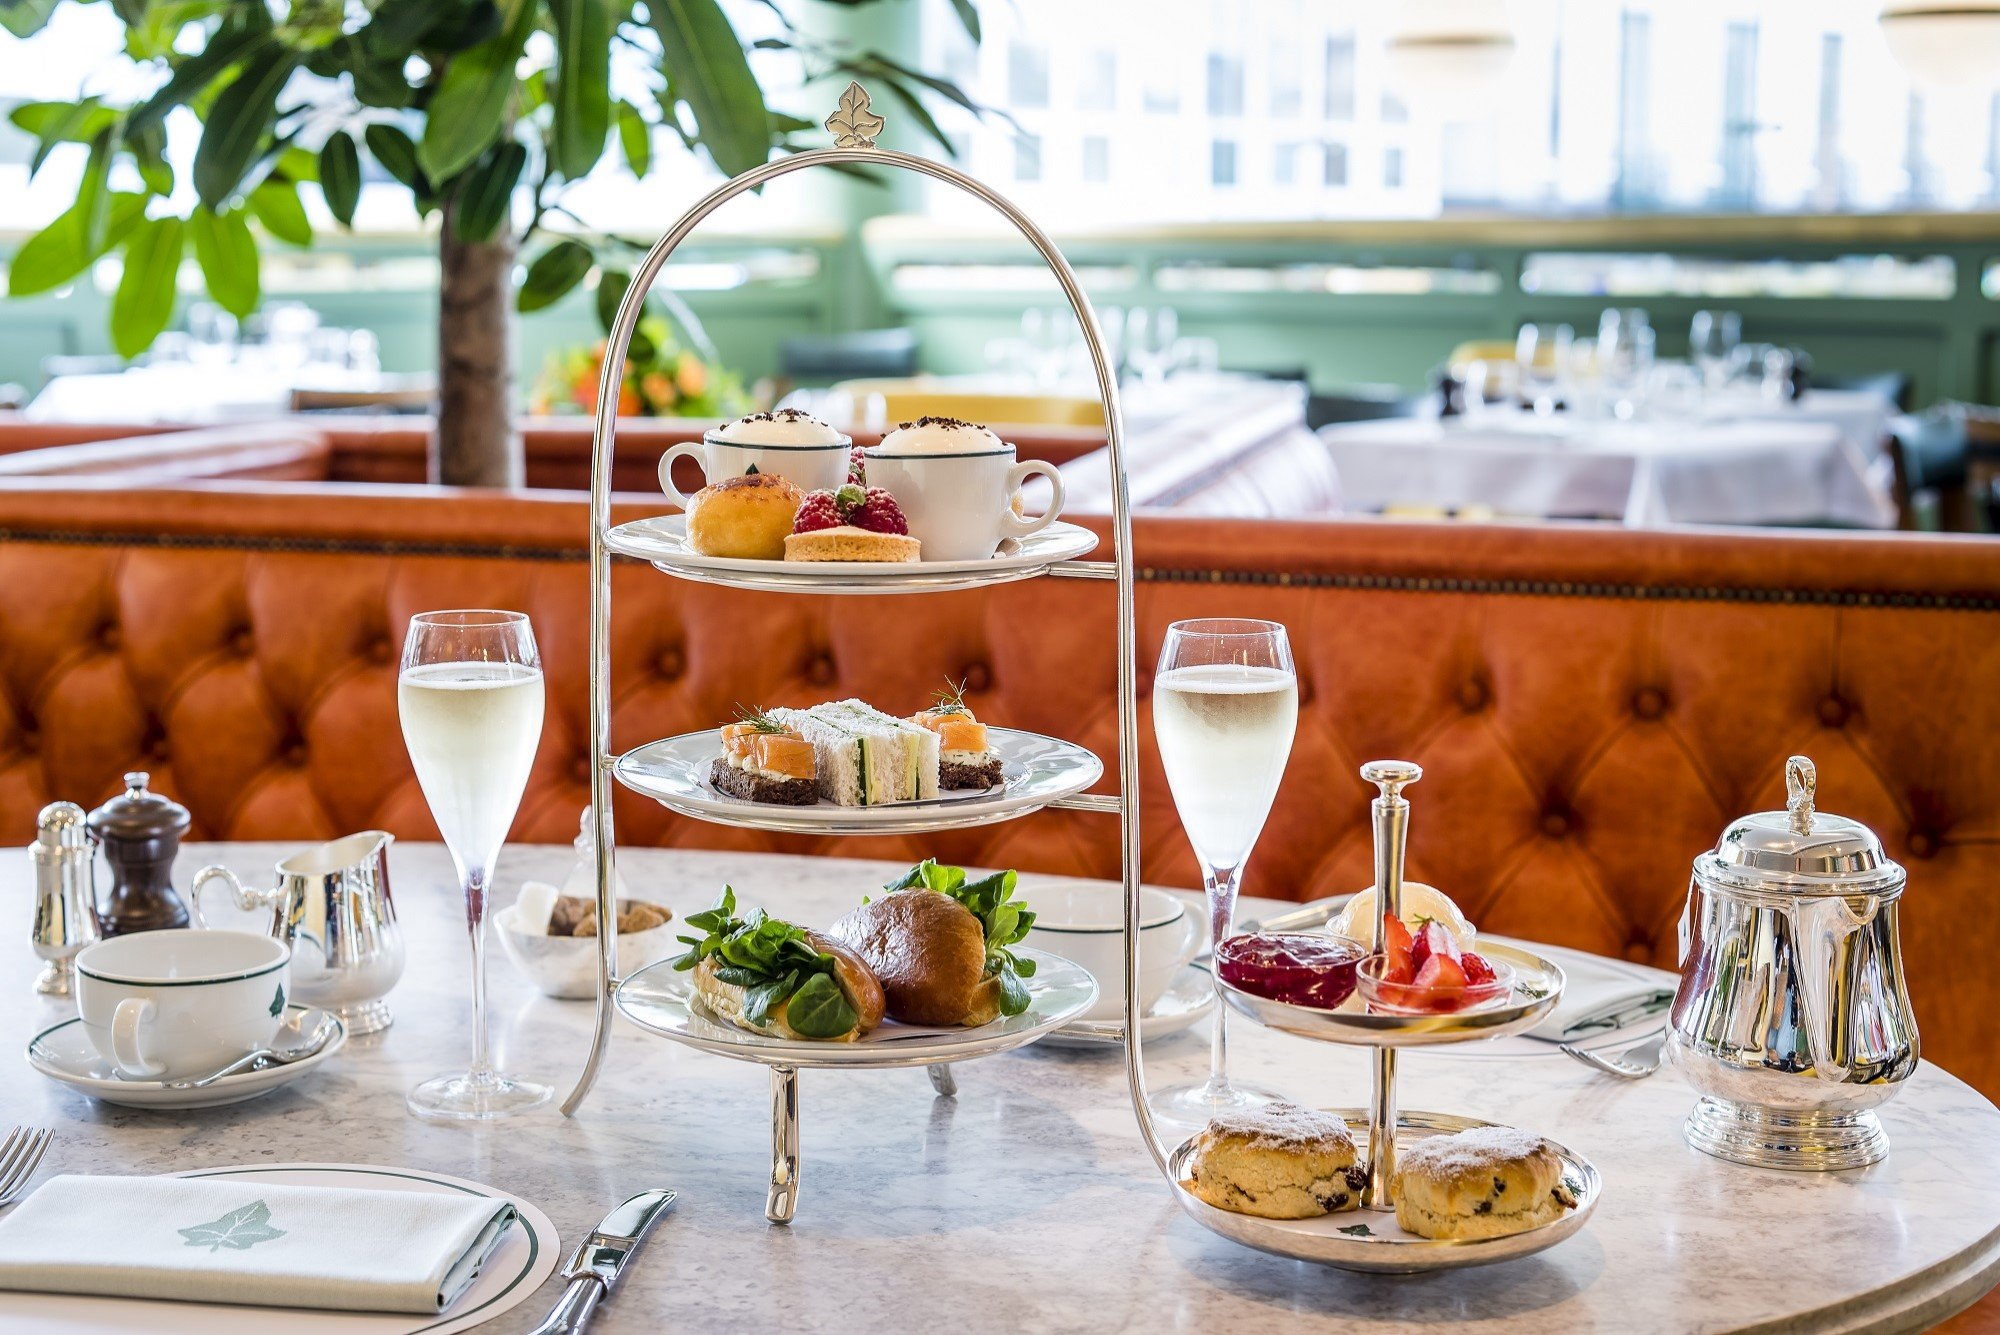 Afternoon Tea at The Ivy Oxford Brasserie